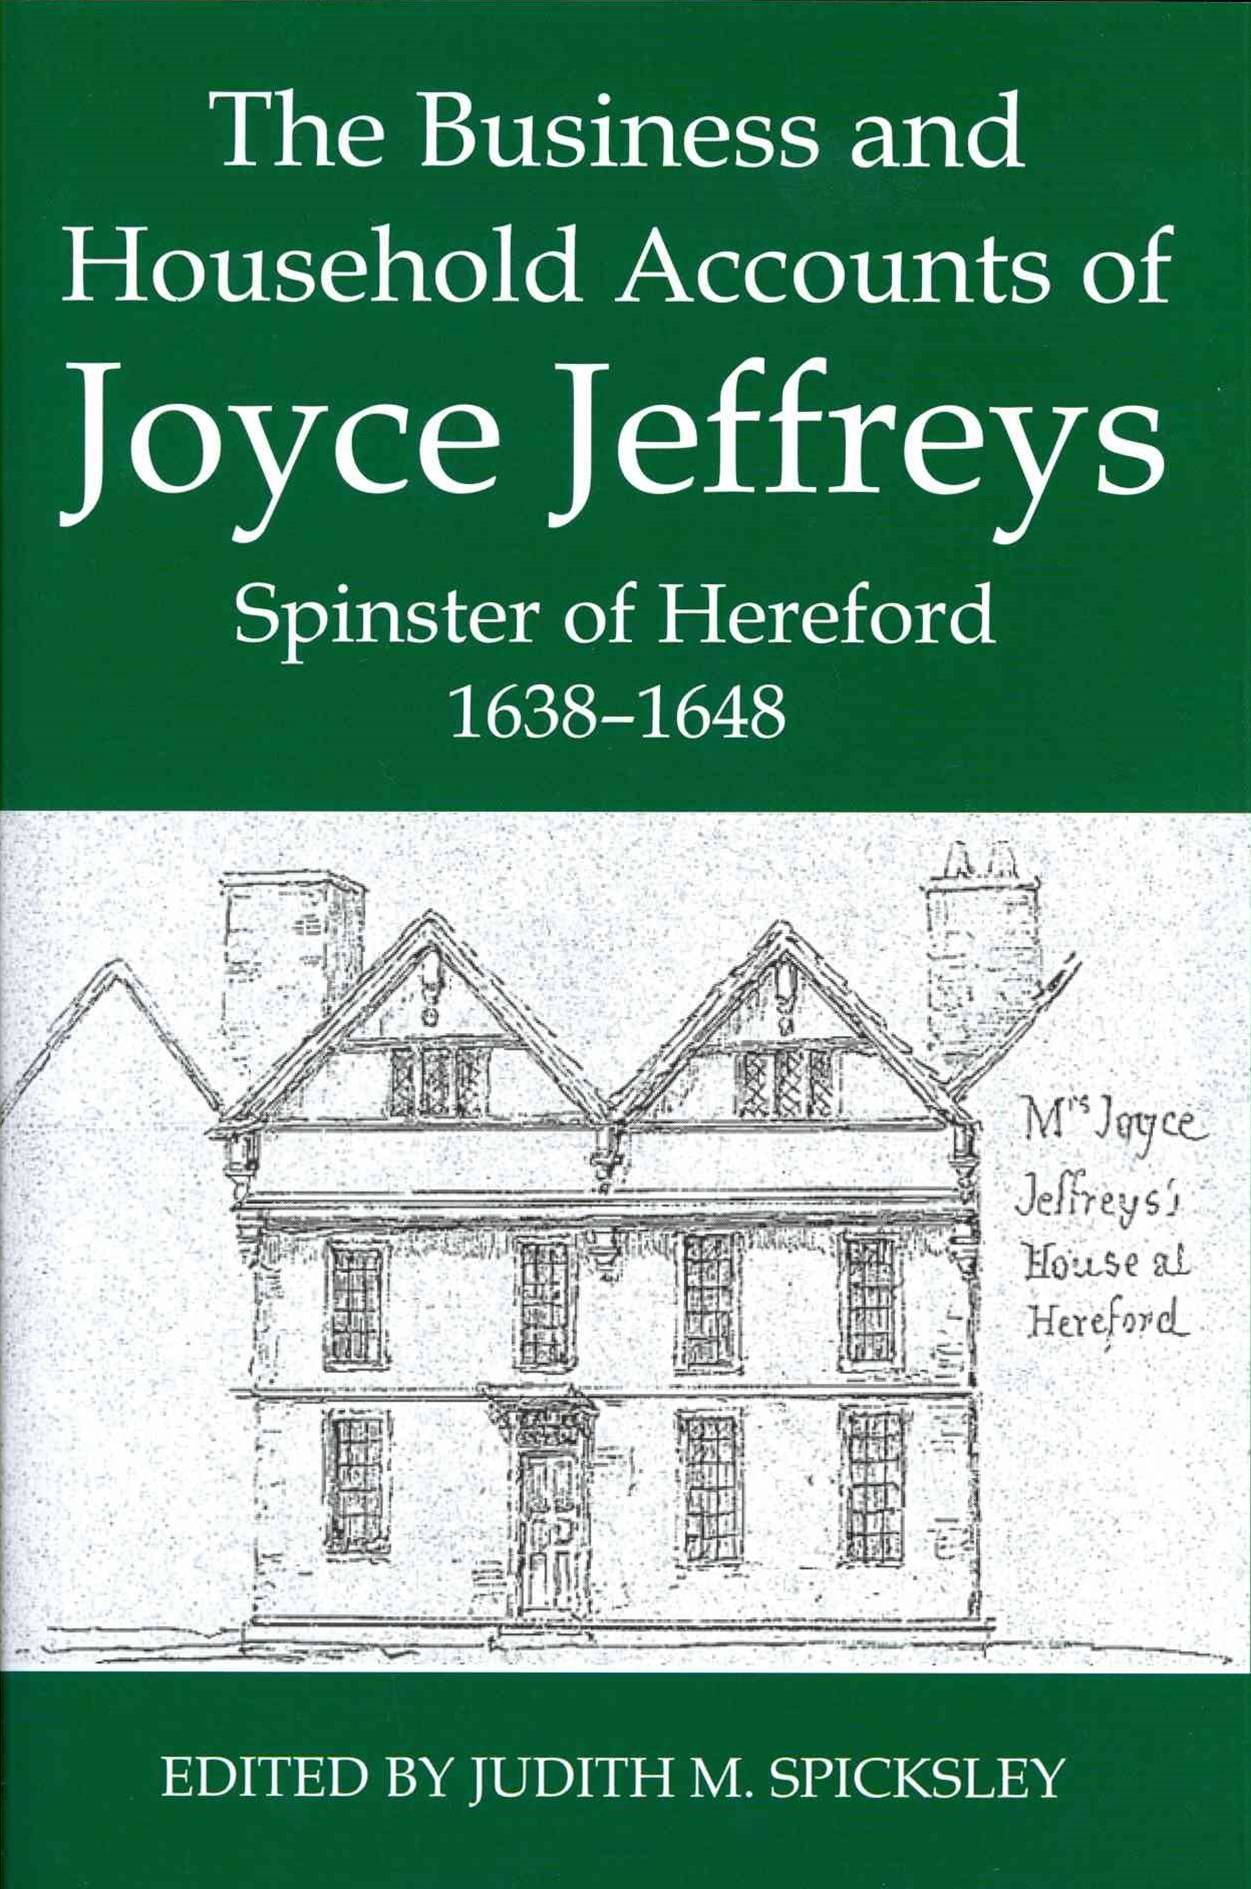 The Business and Household Accounts of Joyce Jeffreys